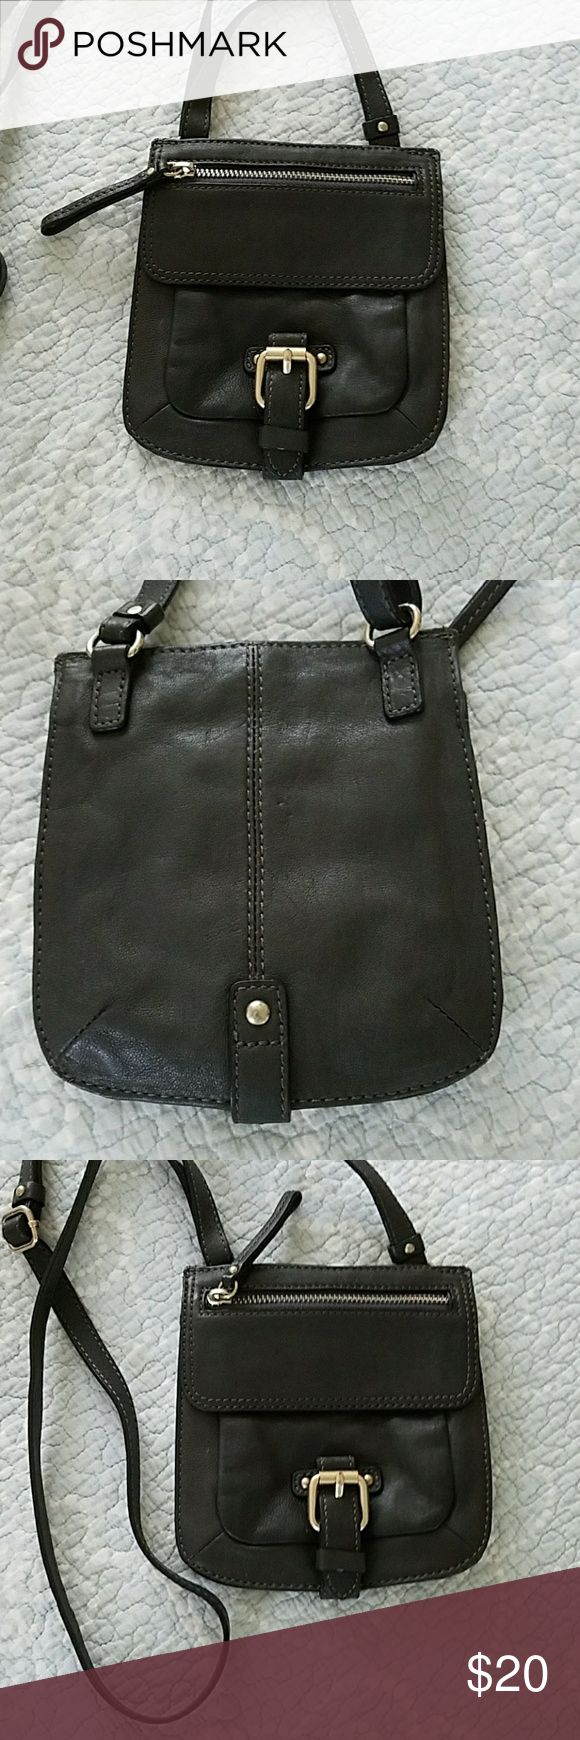 Banana Republic purse Banana Republic mini charcoal gray genuine leather purse. Approximately 6 inches wide by 7 inches high. Used once or twice in excellent condition. Perfect for small amounts of personal items like lipstick cell phone and small wallets. Smoke-free home. Remember to bundle with other items for an even better deal! Banana Republic Bags